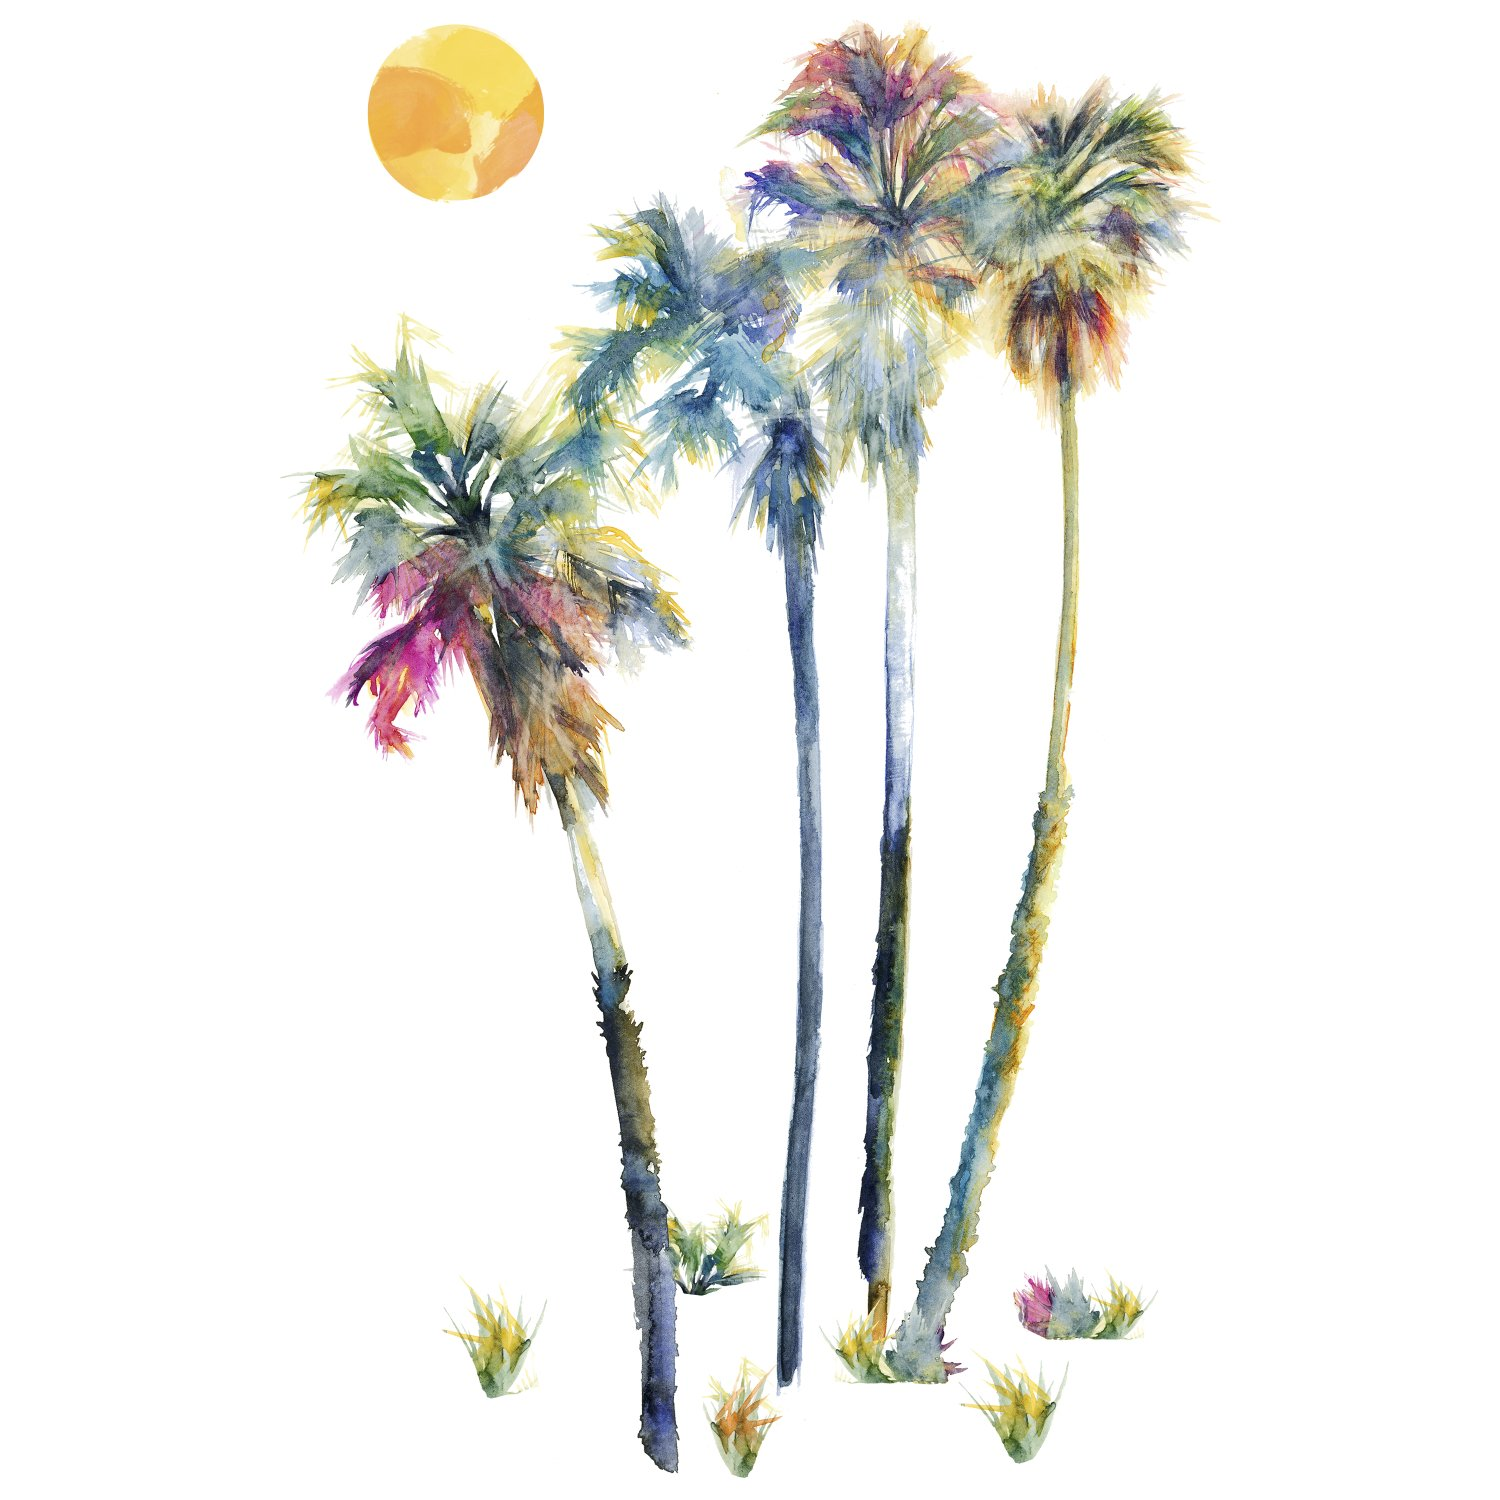 Roommates rmk2782gm watercolor palm trees peel stick giant wall roommates rmk2782gm watercolor palm trees peel stick giant wall decals 23 x 47 amazon amipublicfo Image collections